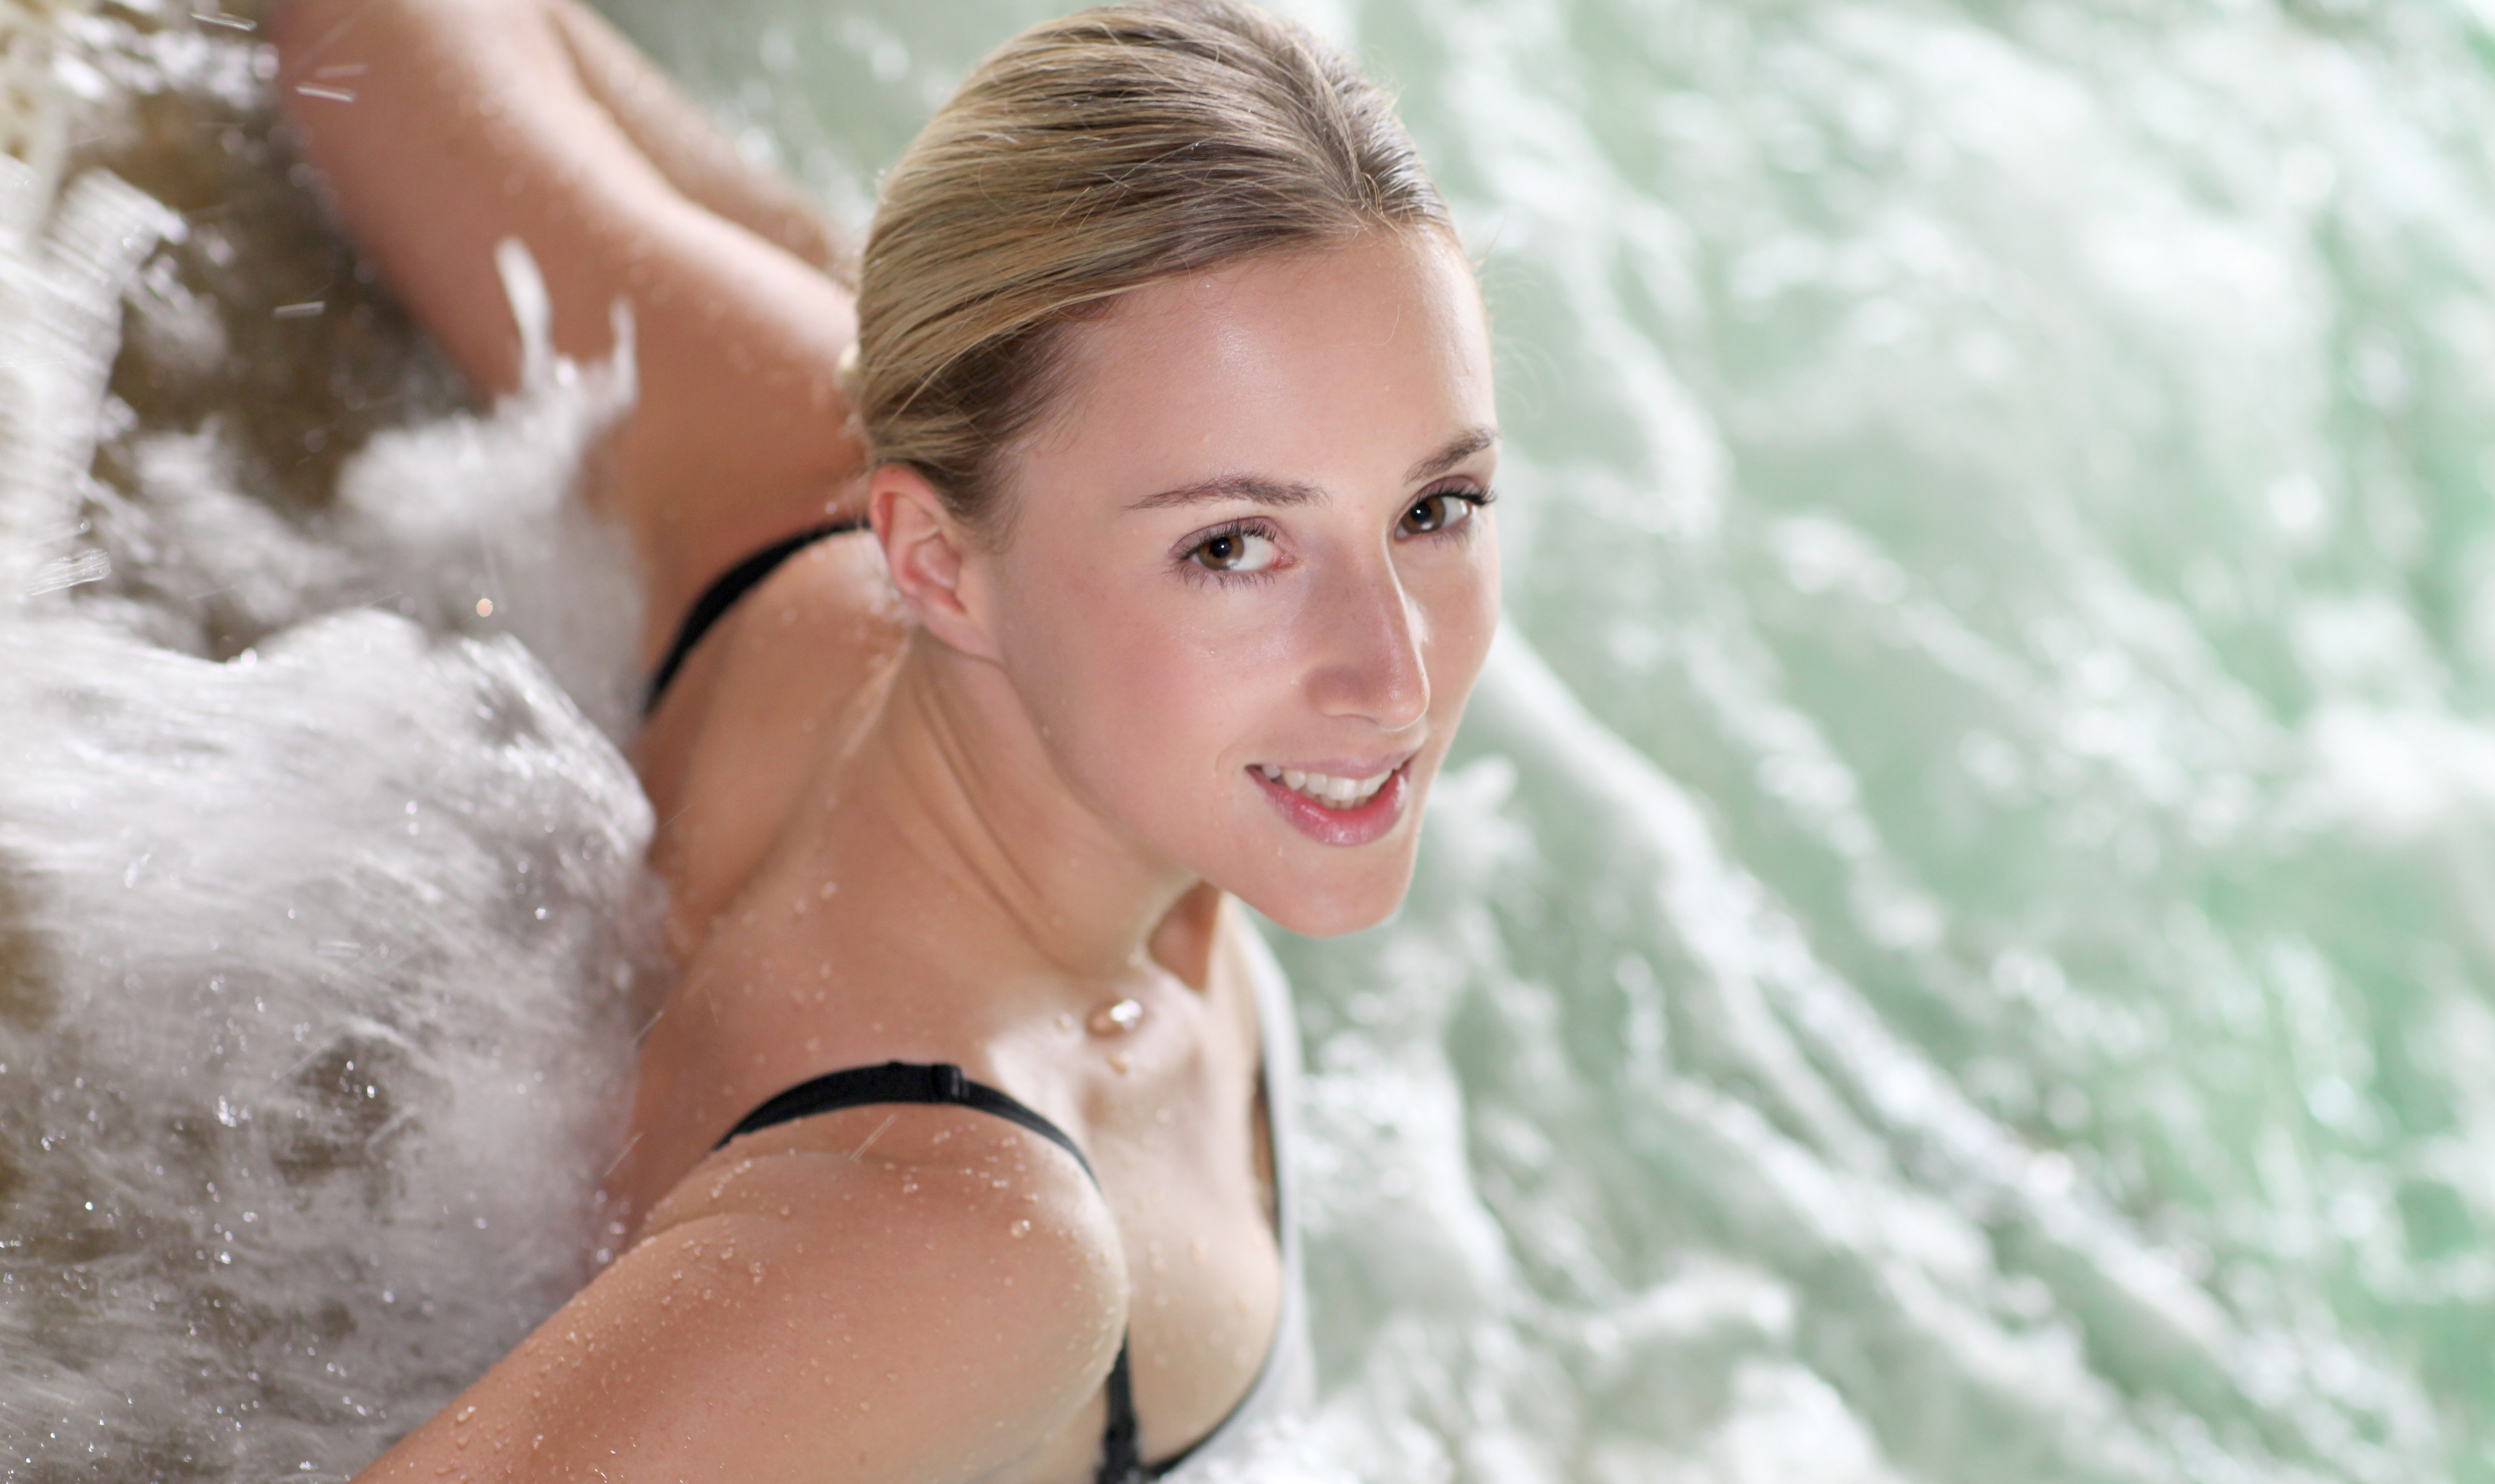 Smiling woman in a hot tub